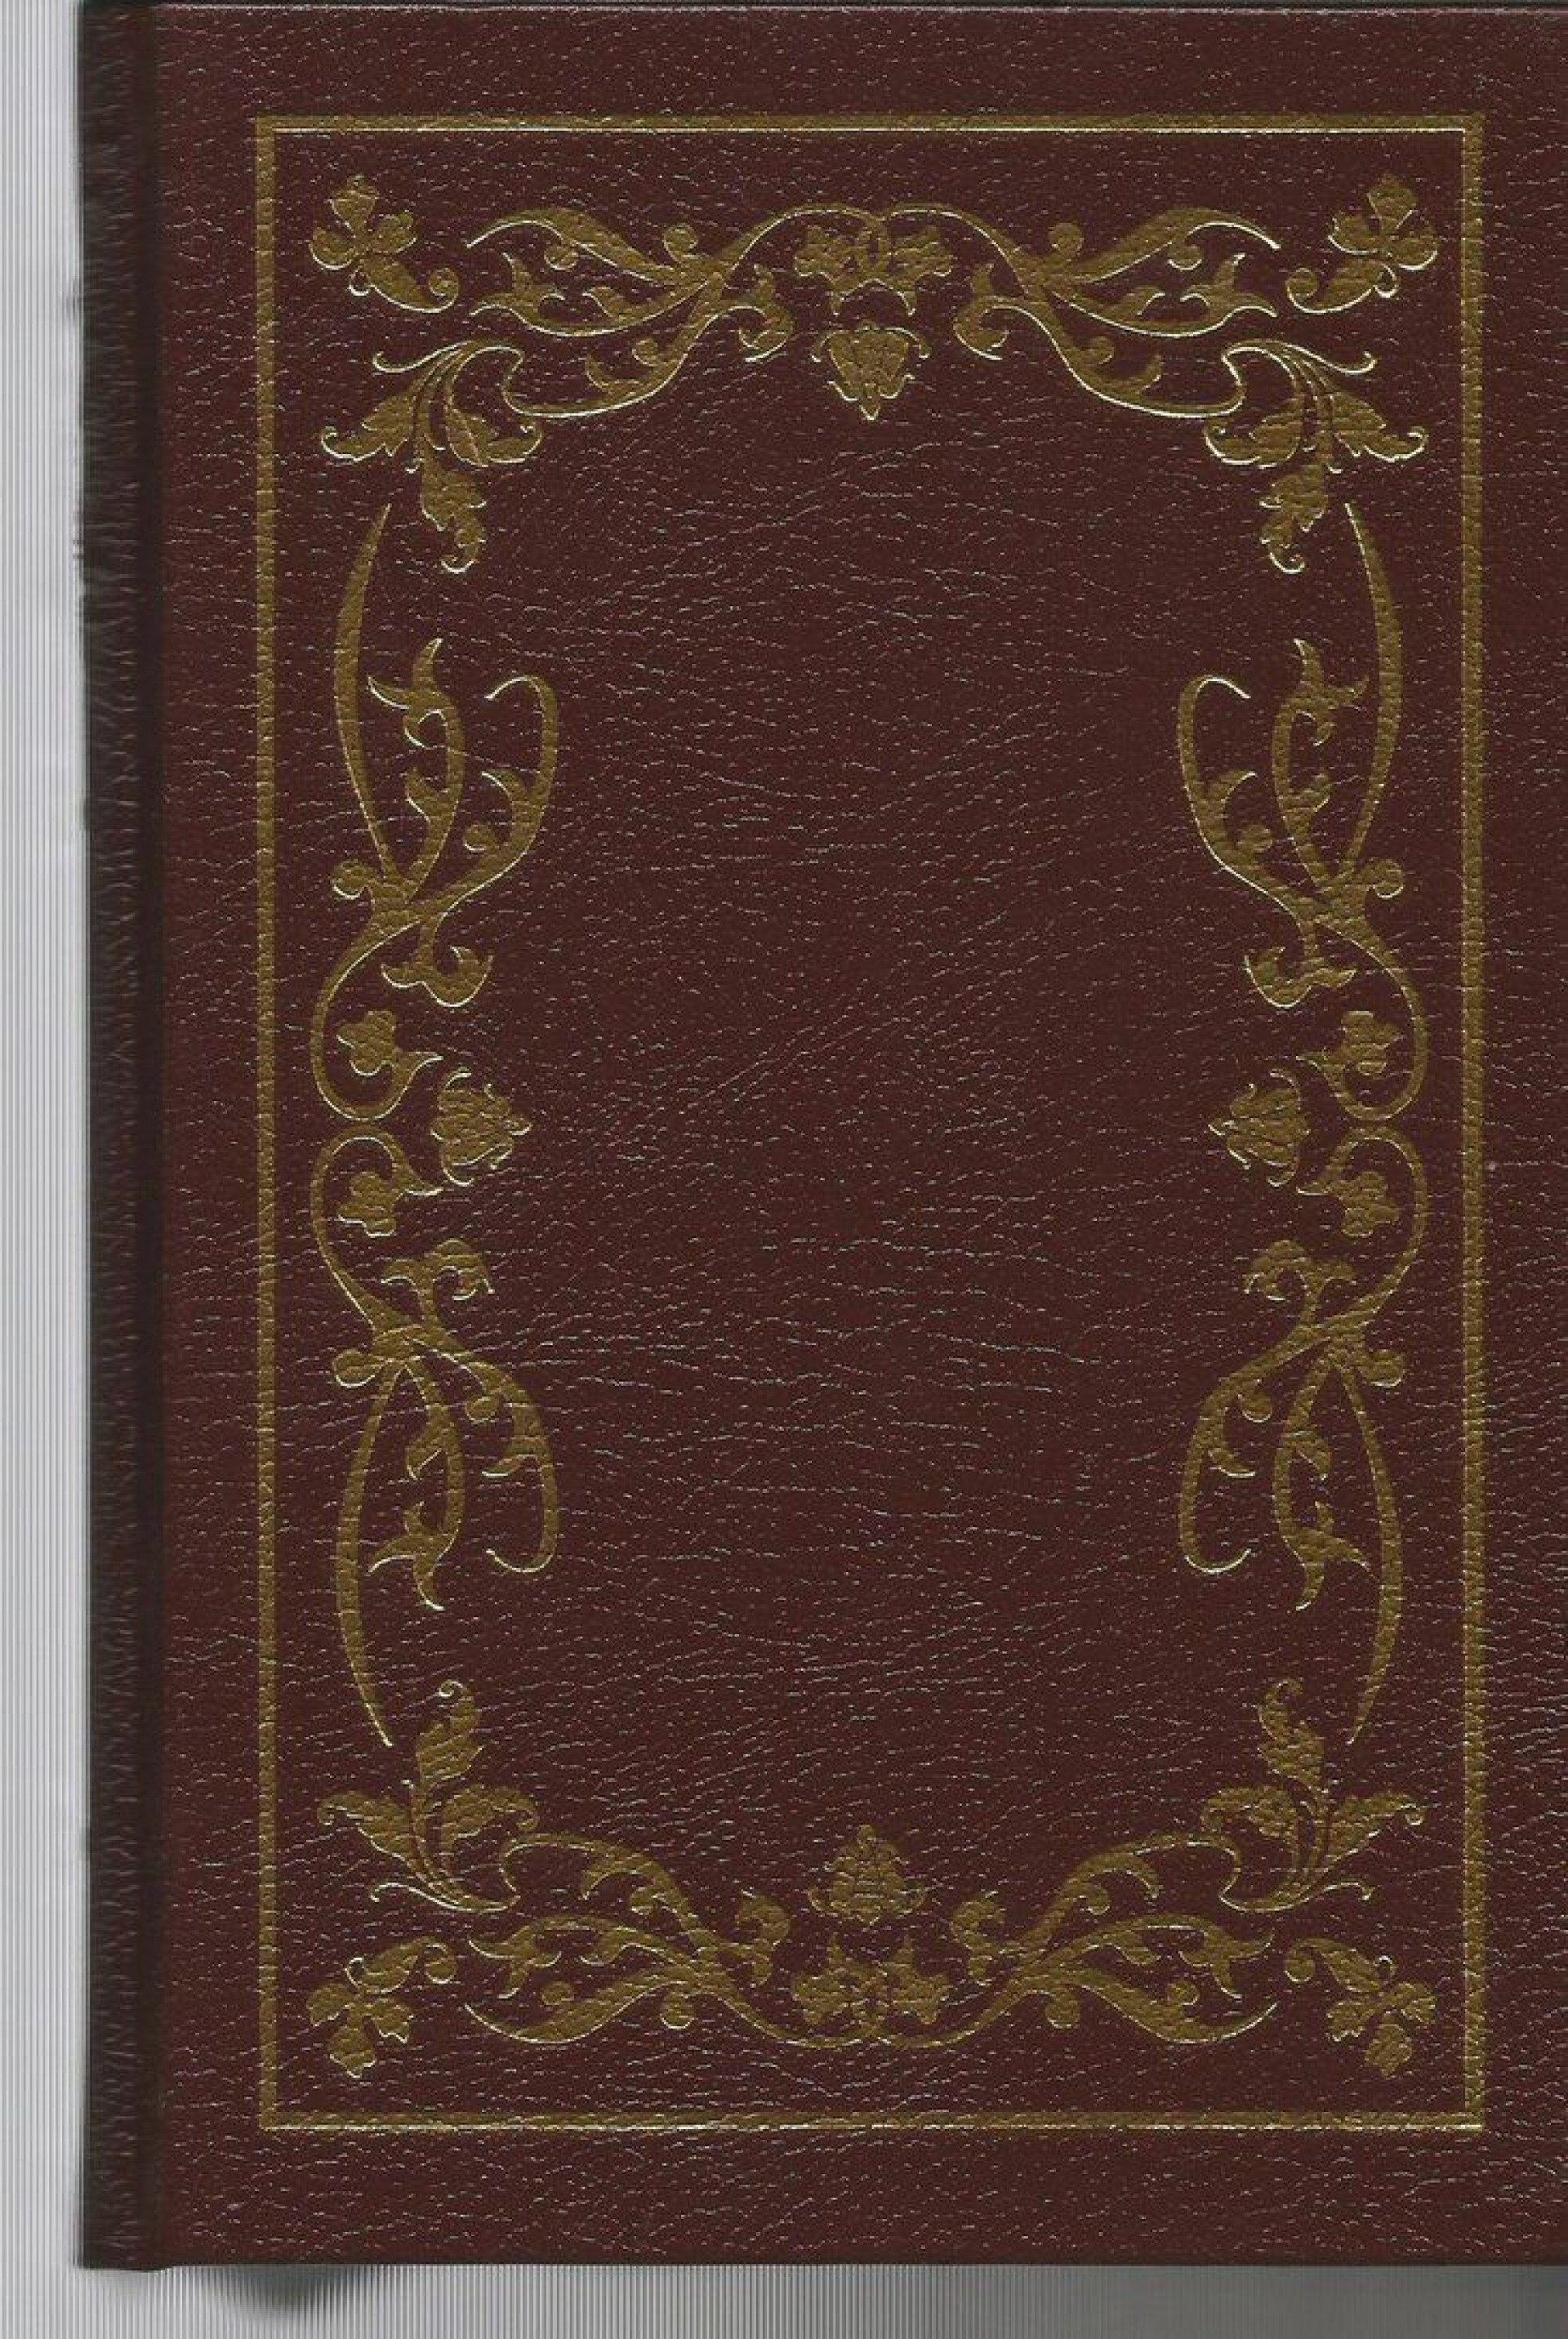 000 Magnificent Old Book Cover Template Picture  Fashioned Word1920